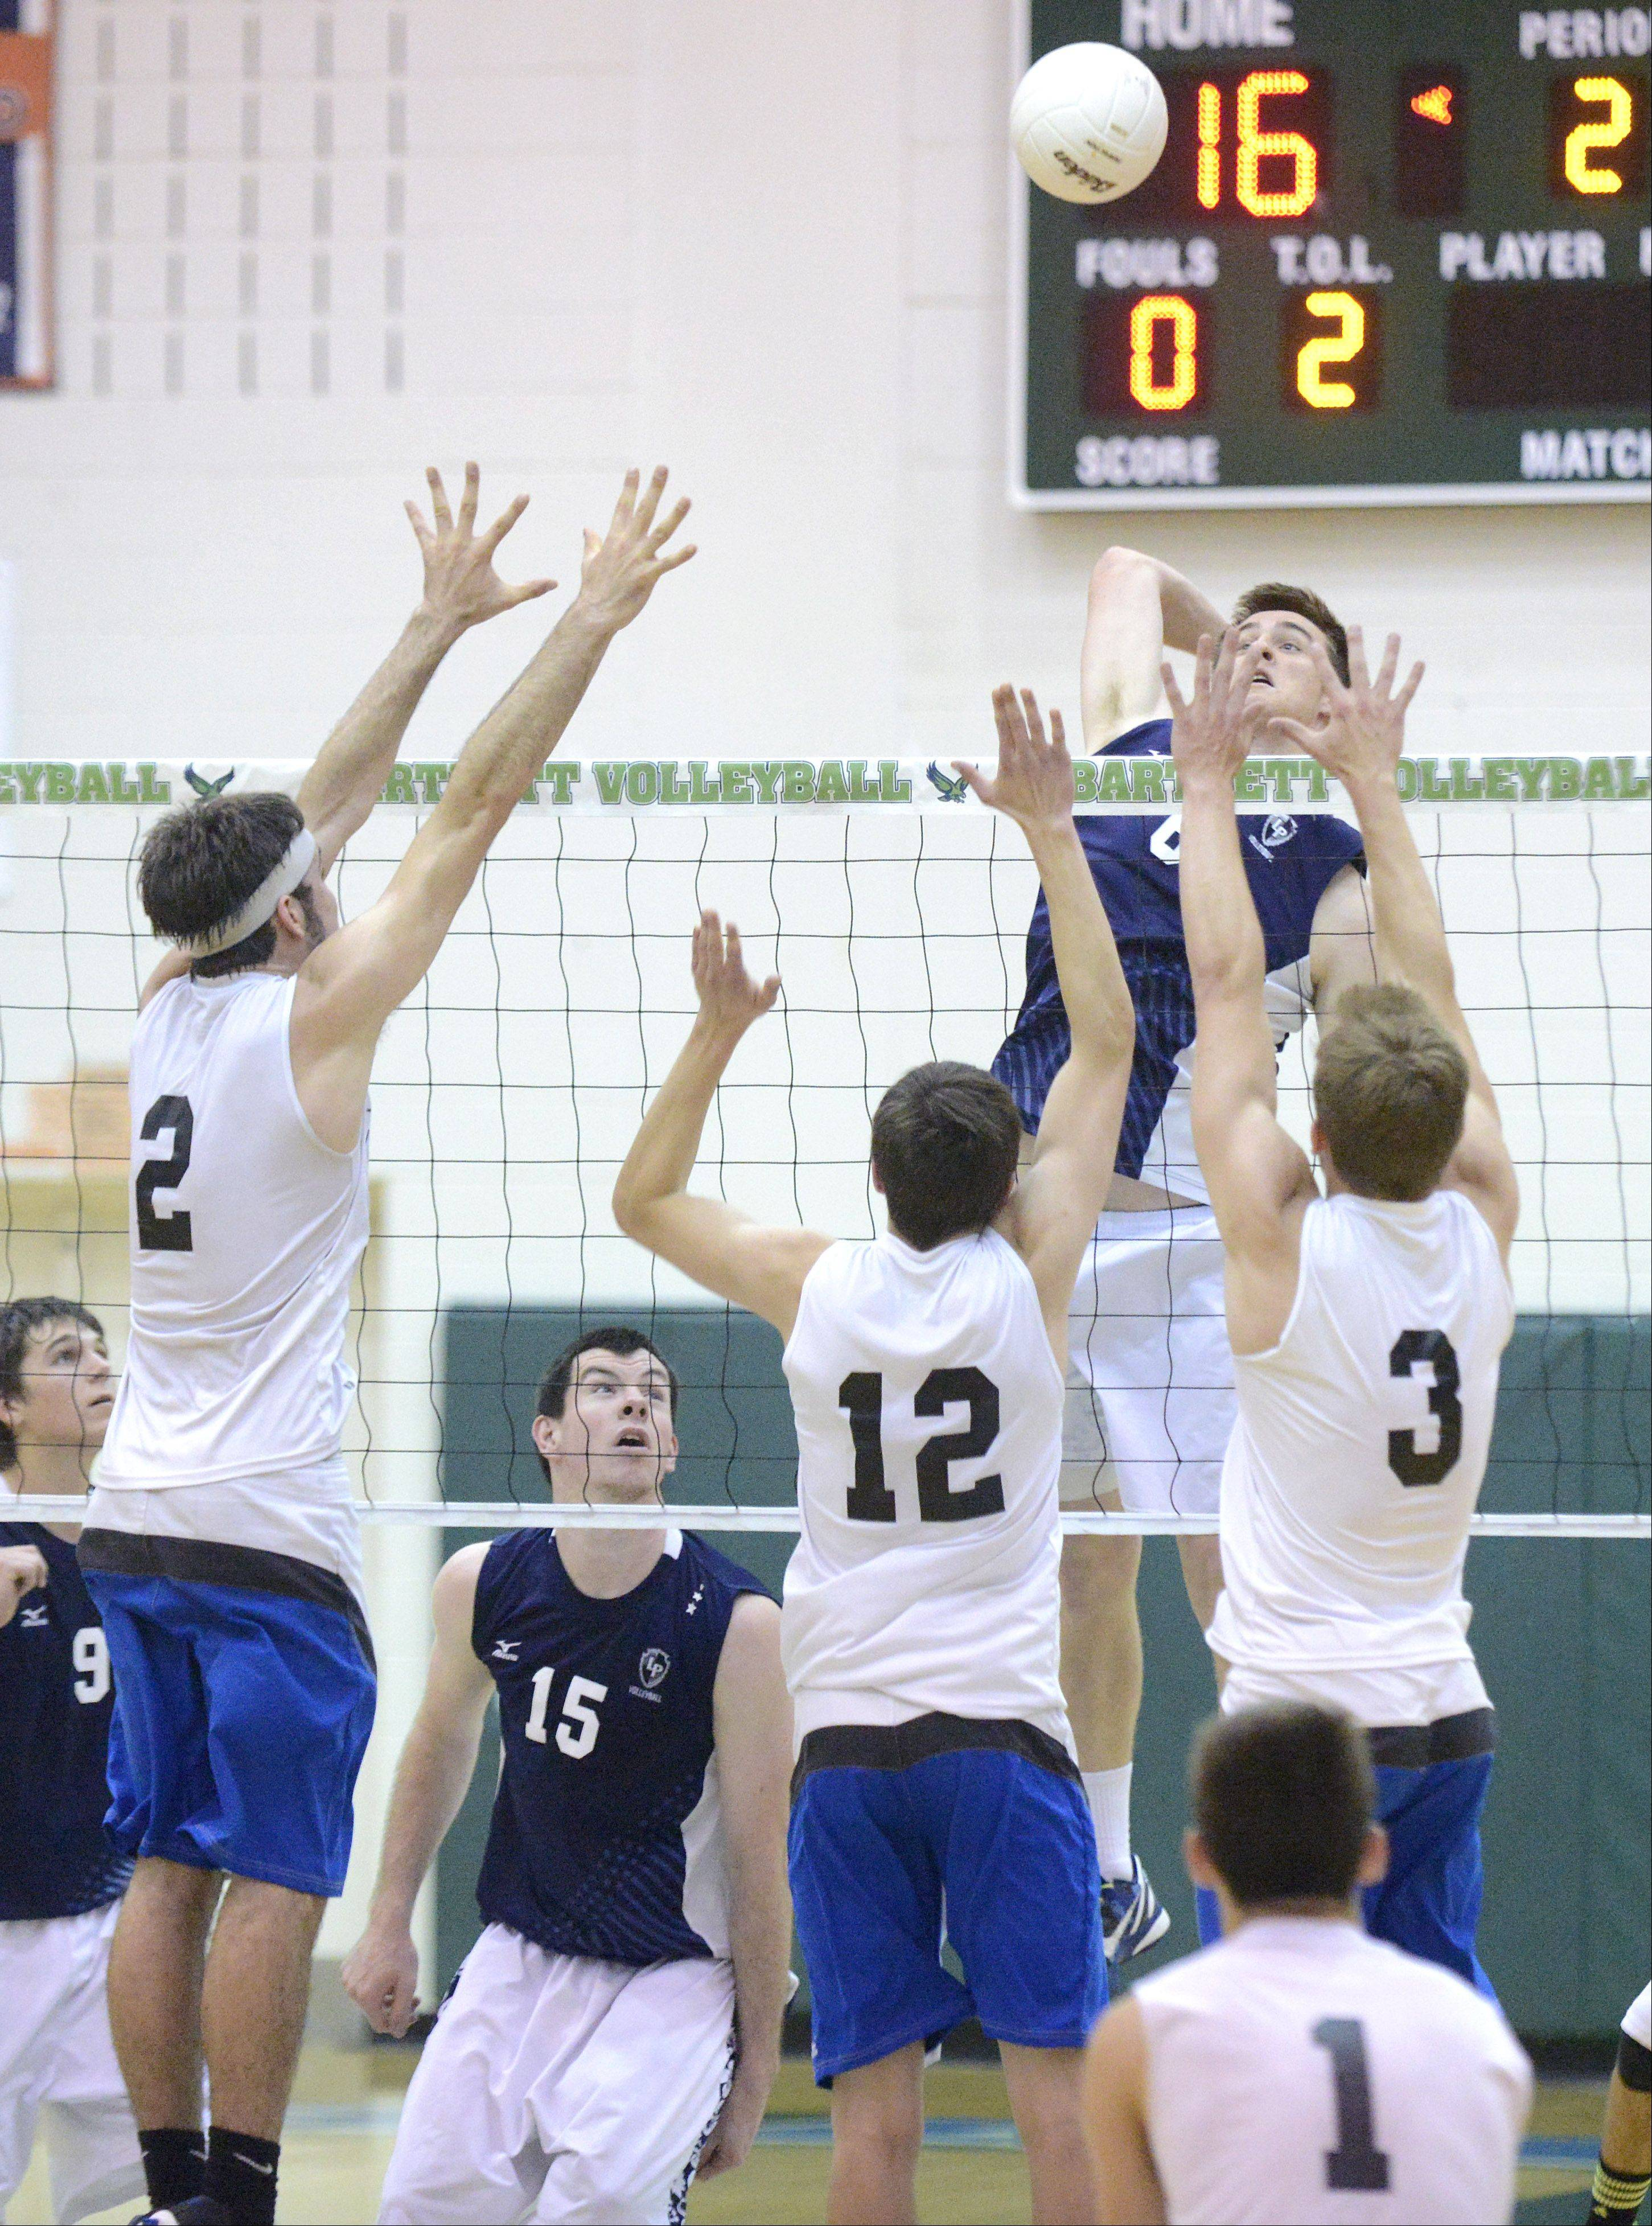 Lake Park's Dillon Hock spikes the ball into a block by St. Charles North's Jonathan Orech, Jake Hamilton and Pat Misiewicz in the second game of the sectional championship at Bartlett on Tuesday.